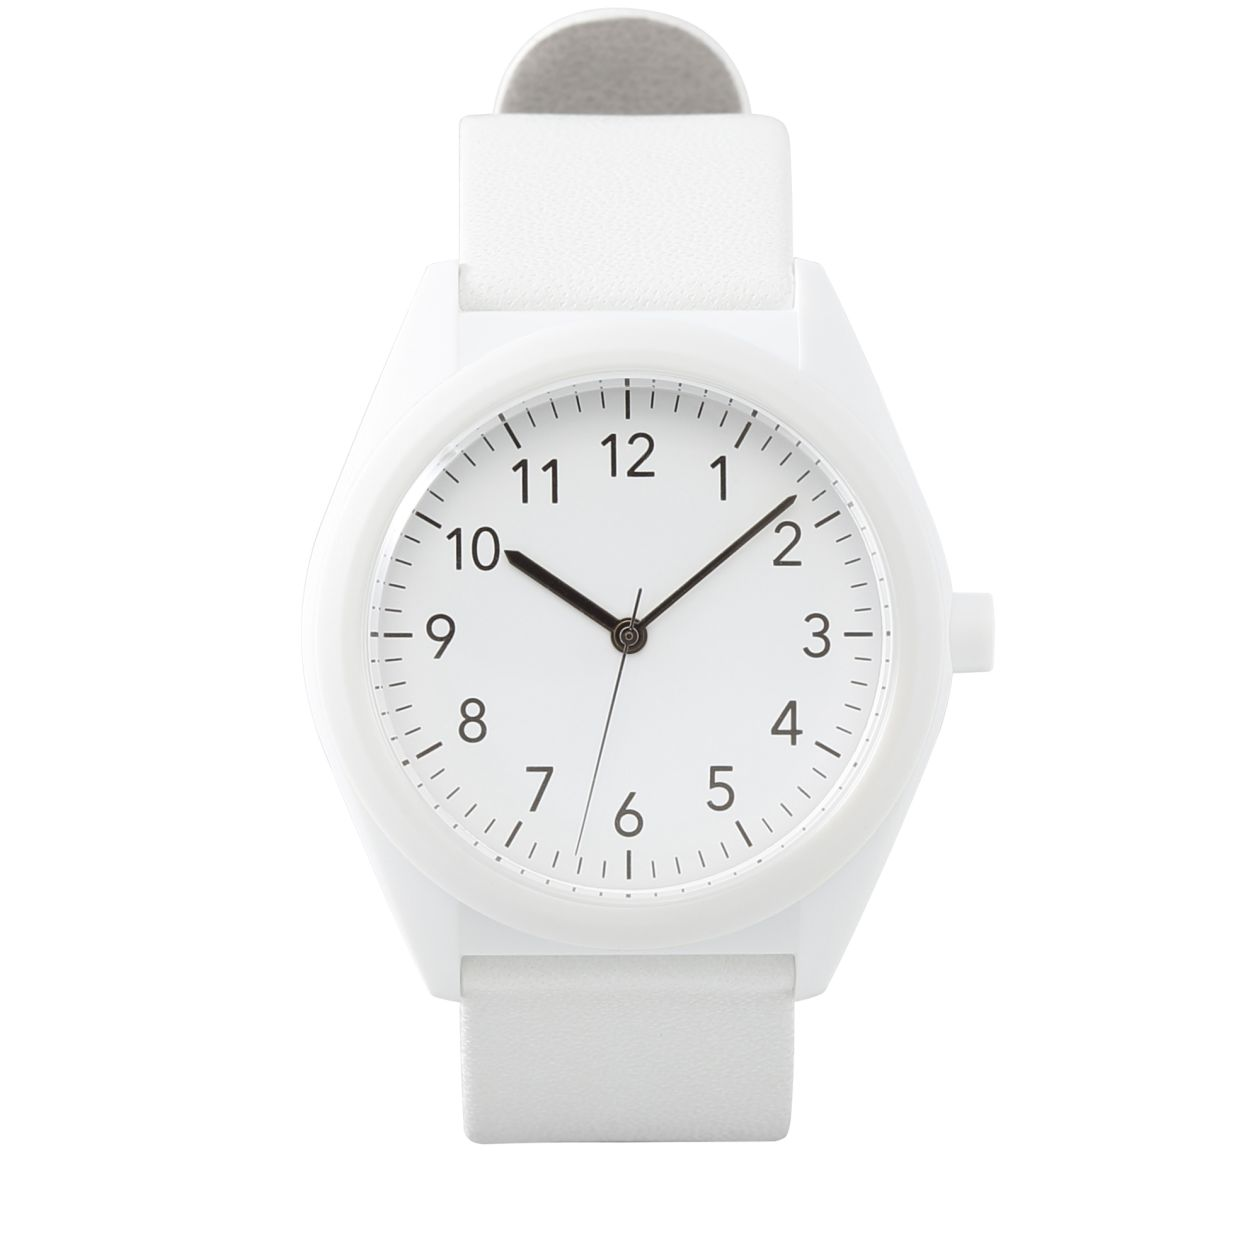 WATCH / SOLAR WATCH / WHITE